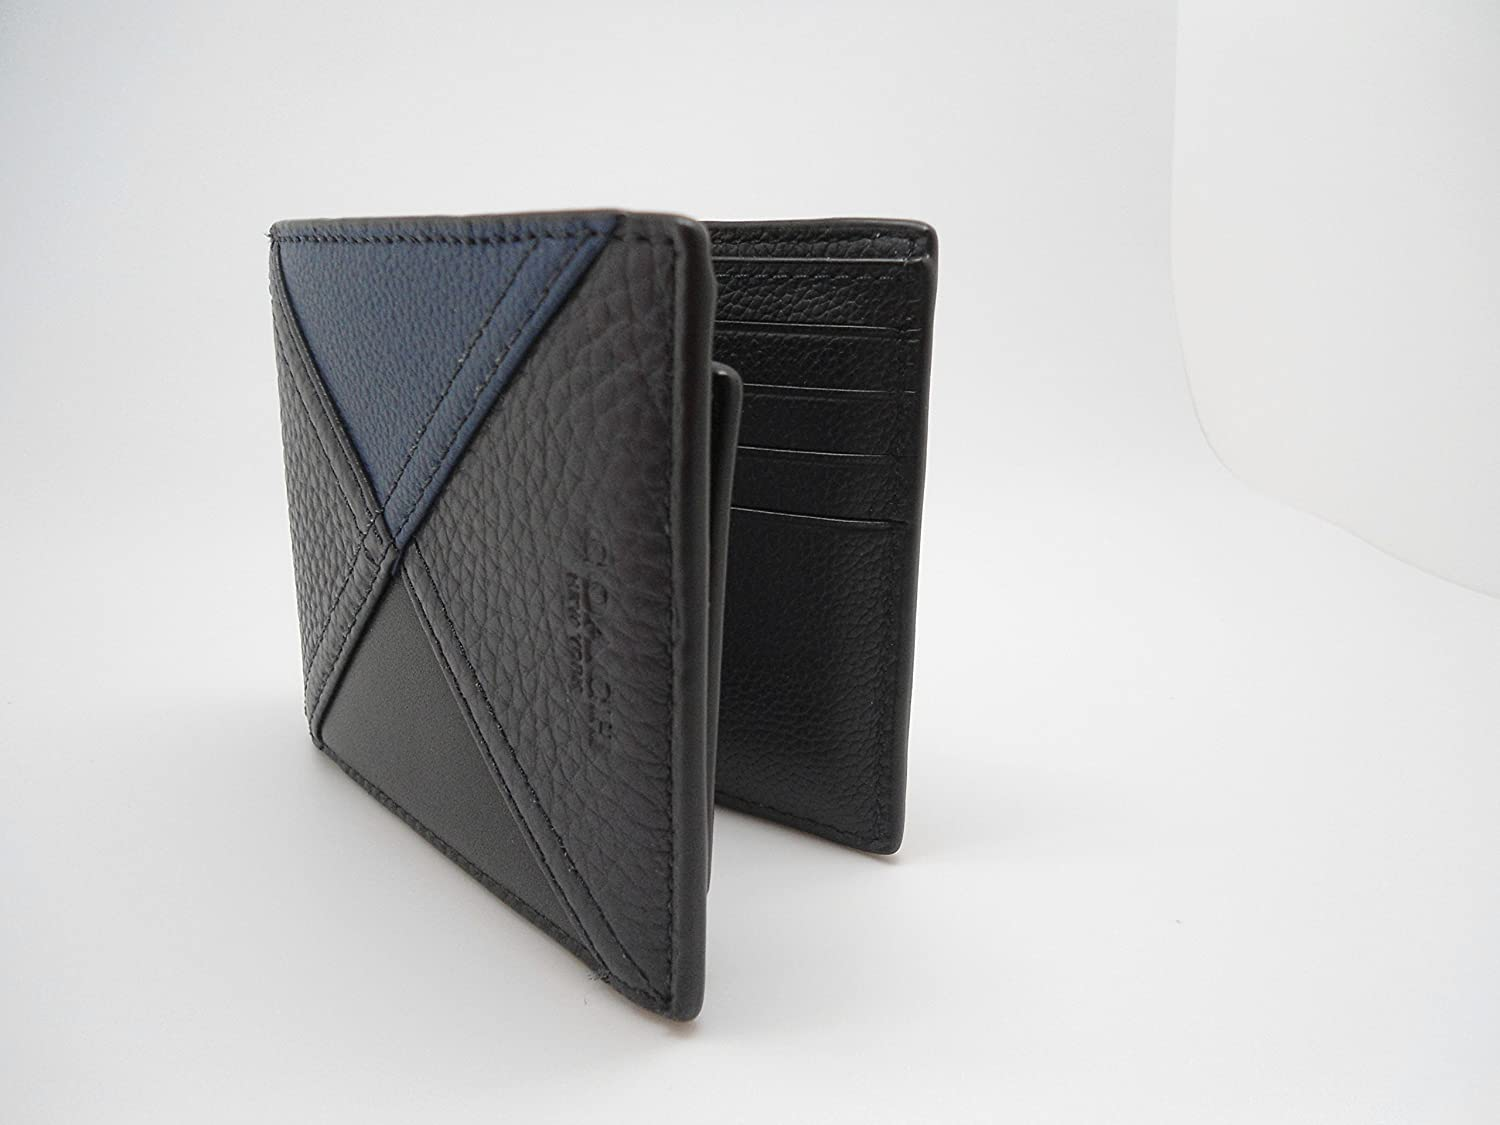 afcd94f51ec18 COACH 3 in 1 Patchwork Leather Passcase ID Wallet in Indigo Blue 56599   Amazon.ca  Clothing   Accessories